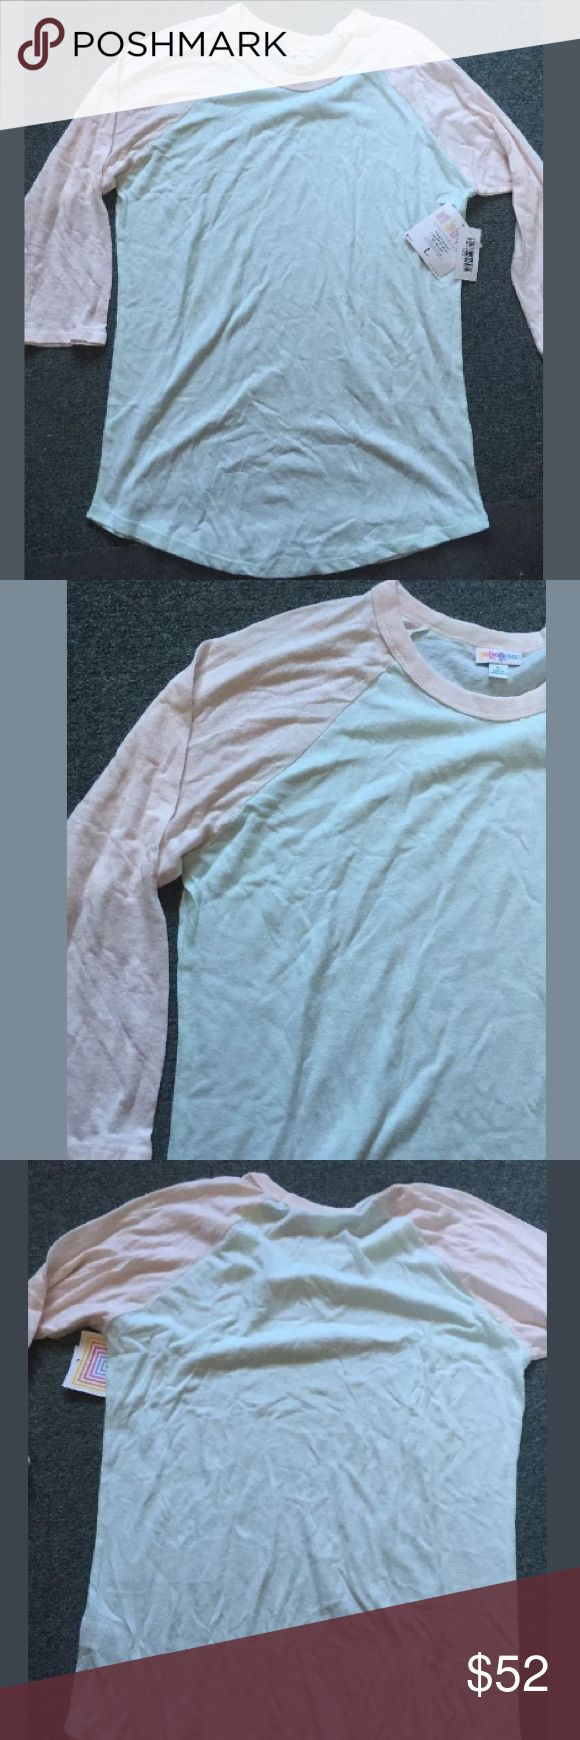 """Lularoe Randy shirt Pale Mint green W/pale pink L Lularoe Randy T-shirt New! Large Pale Mint green (almost teal blue) W/pale pink Sleeves  Women's size large measures 44"""" bust, 40"""" waist, 28"""" length shoulder to hemline  Brand new with tags!  Gorgeous soft pastel color item LuLaRoe Tops Tees - Long Sleeve"""